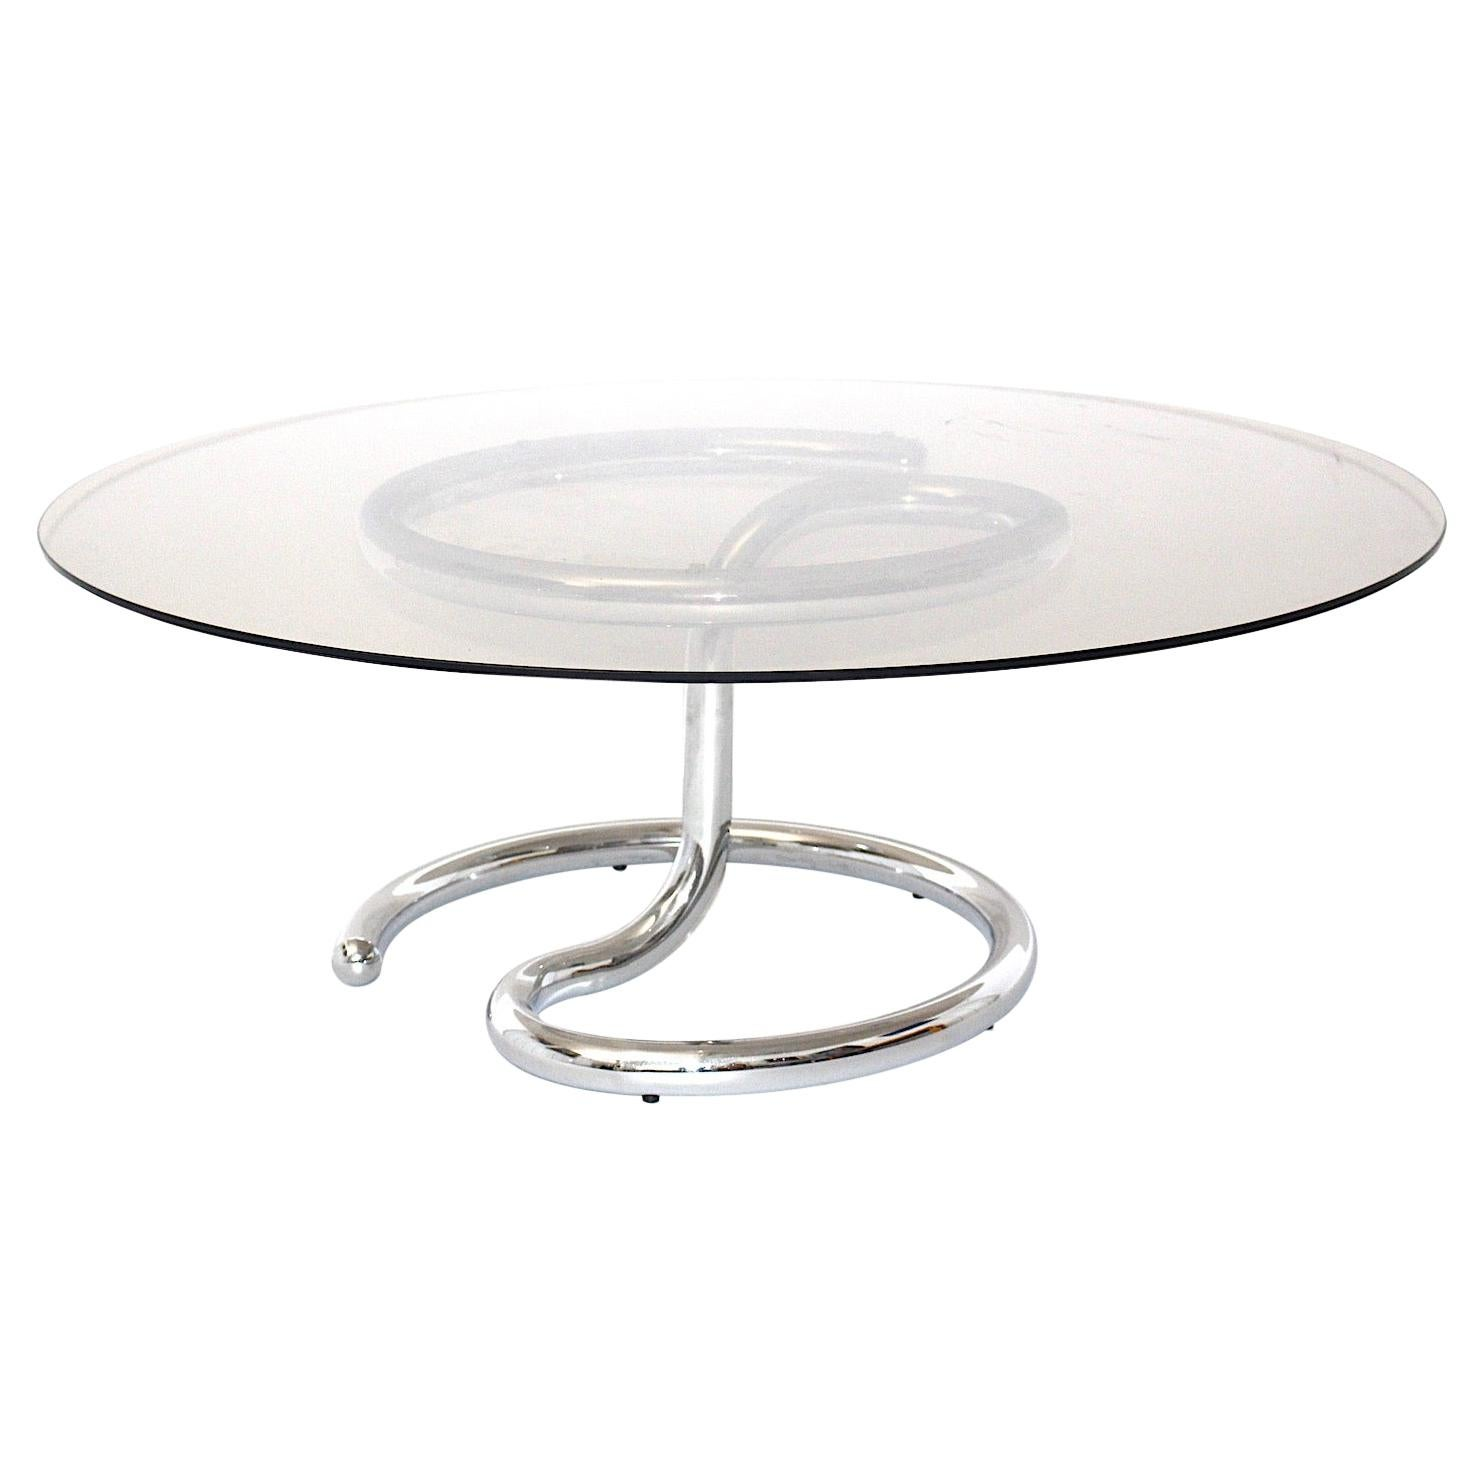 Space Age Vintage Chromed Metal Smoked Glass Coffee Table, 1970s, Germany